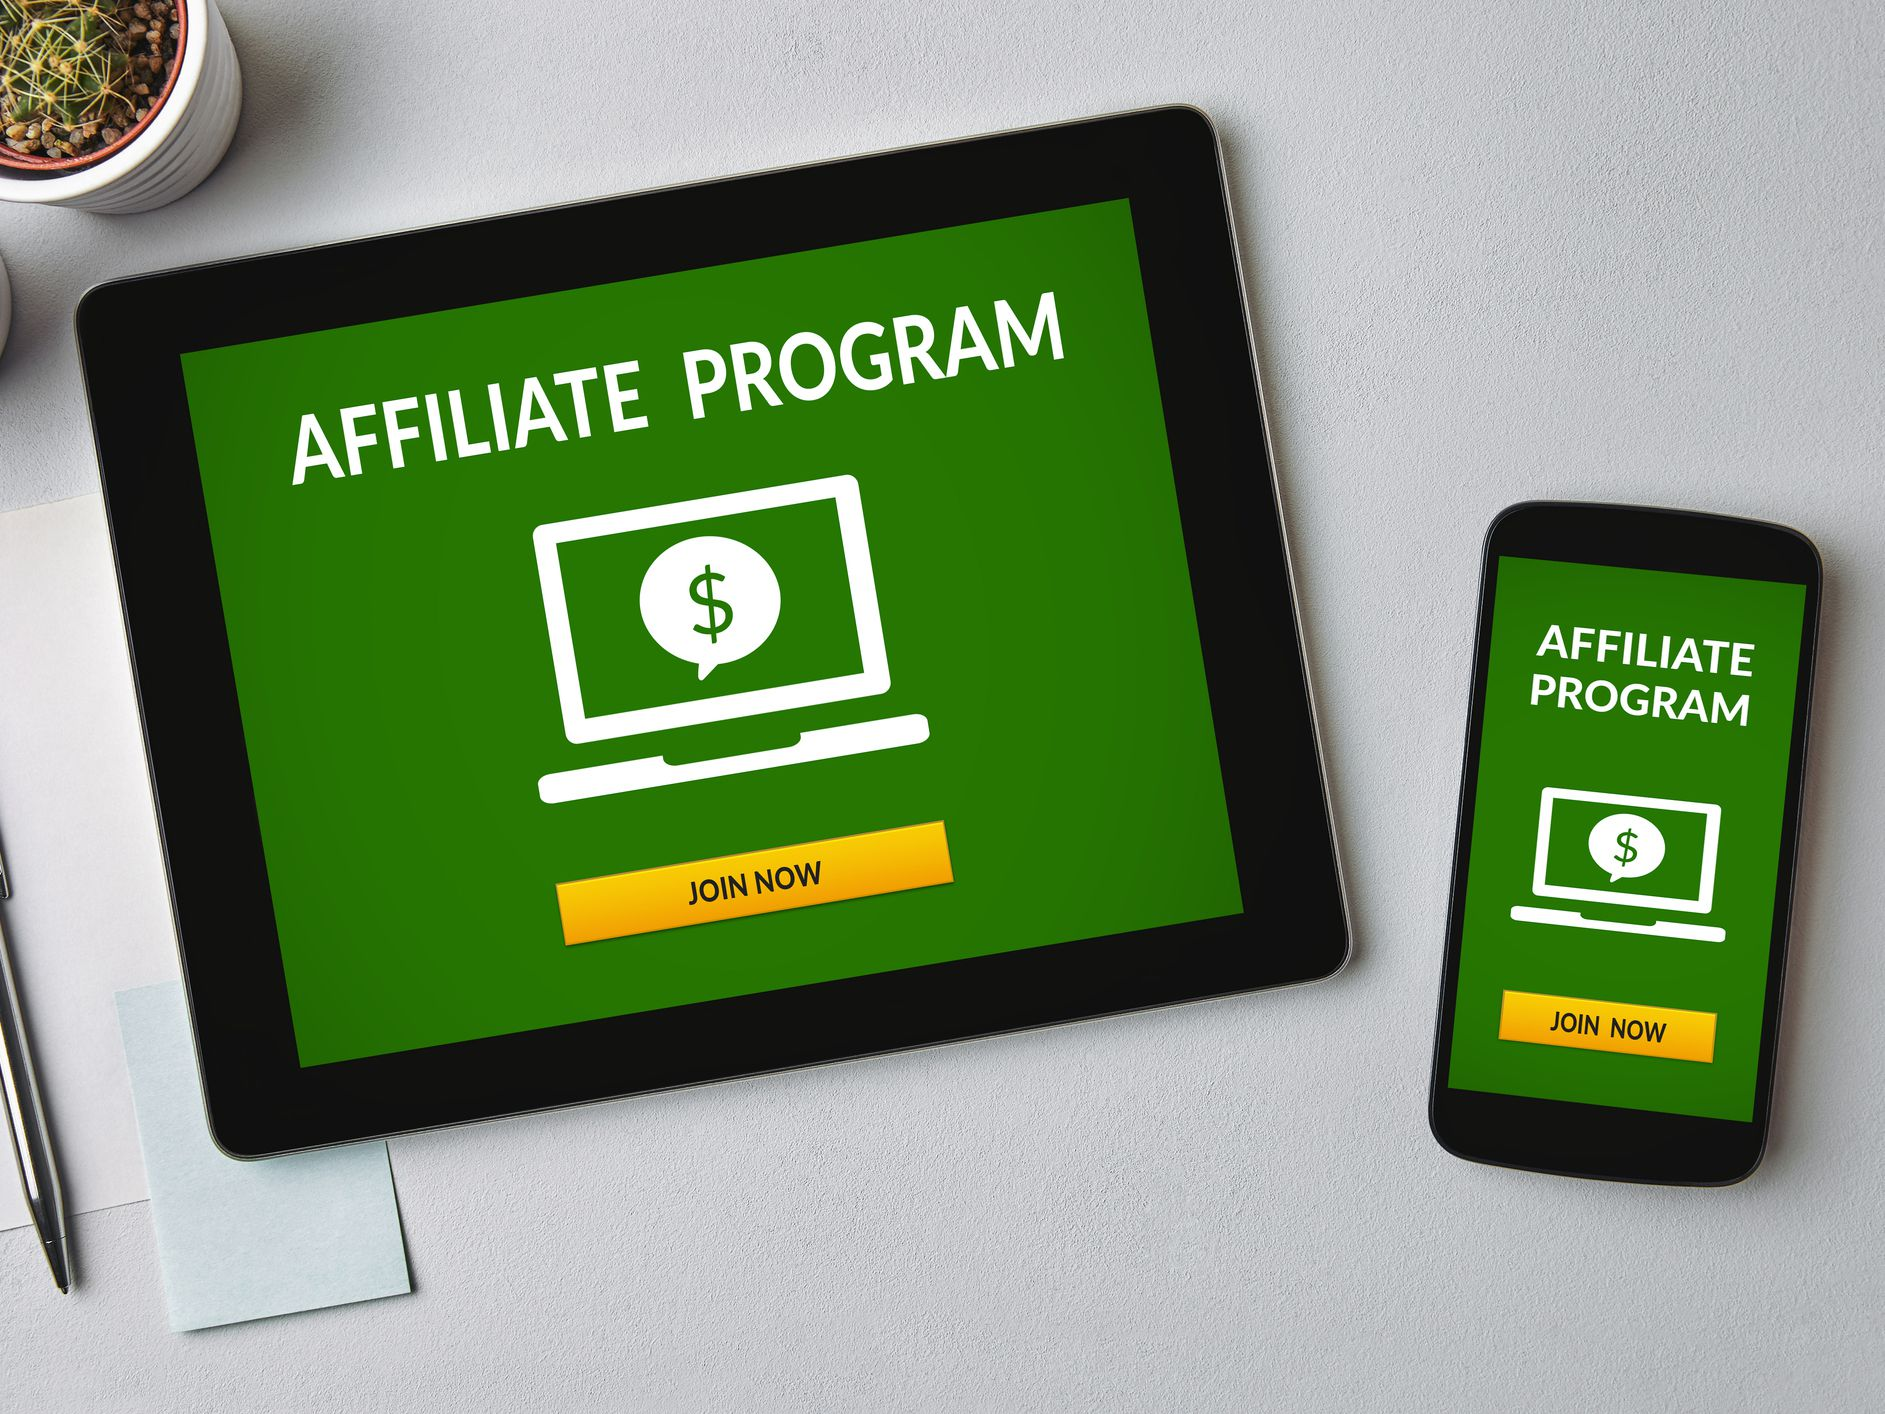 How to Make Money Online With Internet Affiliate Programs